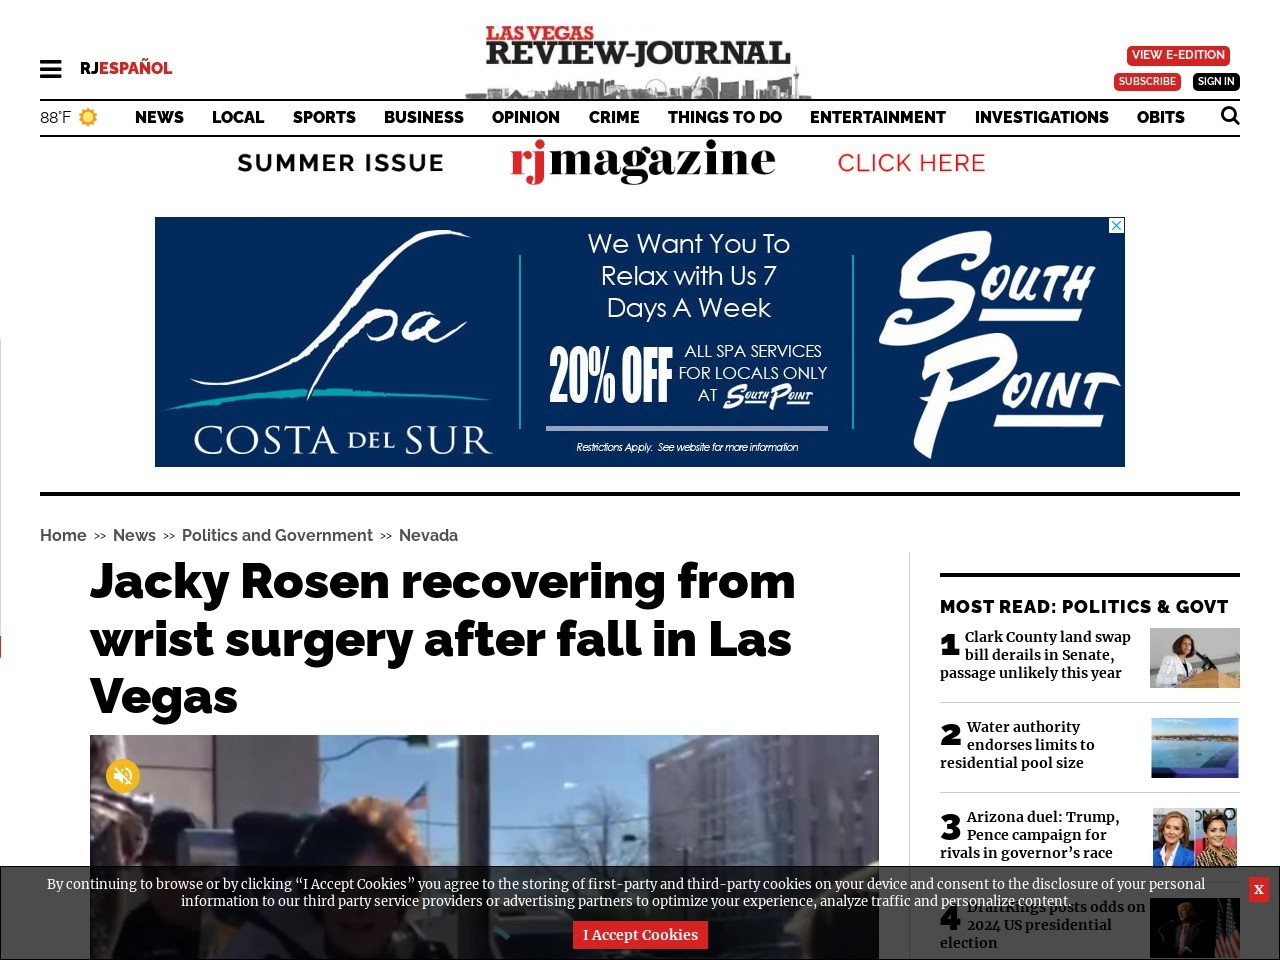 Jacky Rosen recovering from wrist surgery after fall in Las Vegas